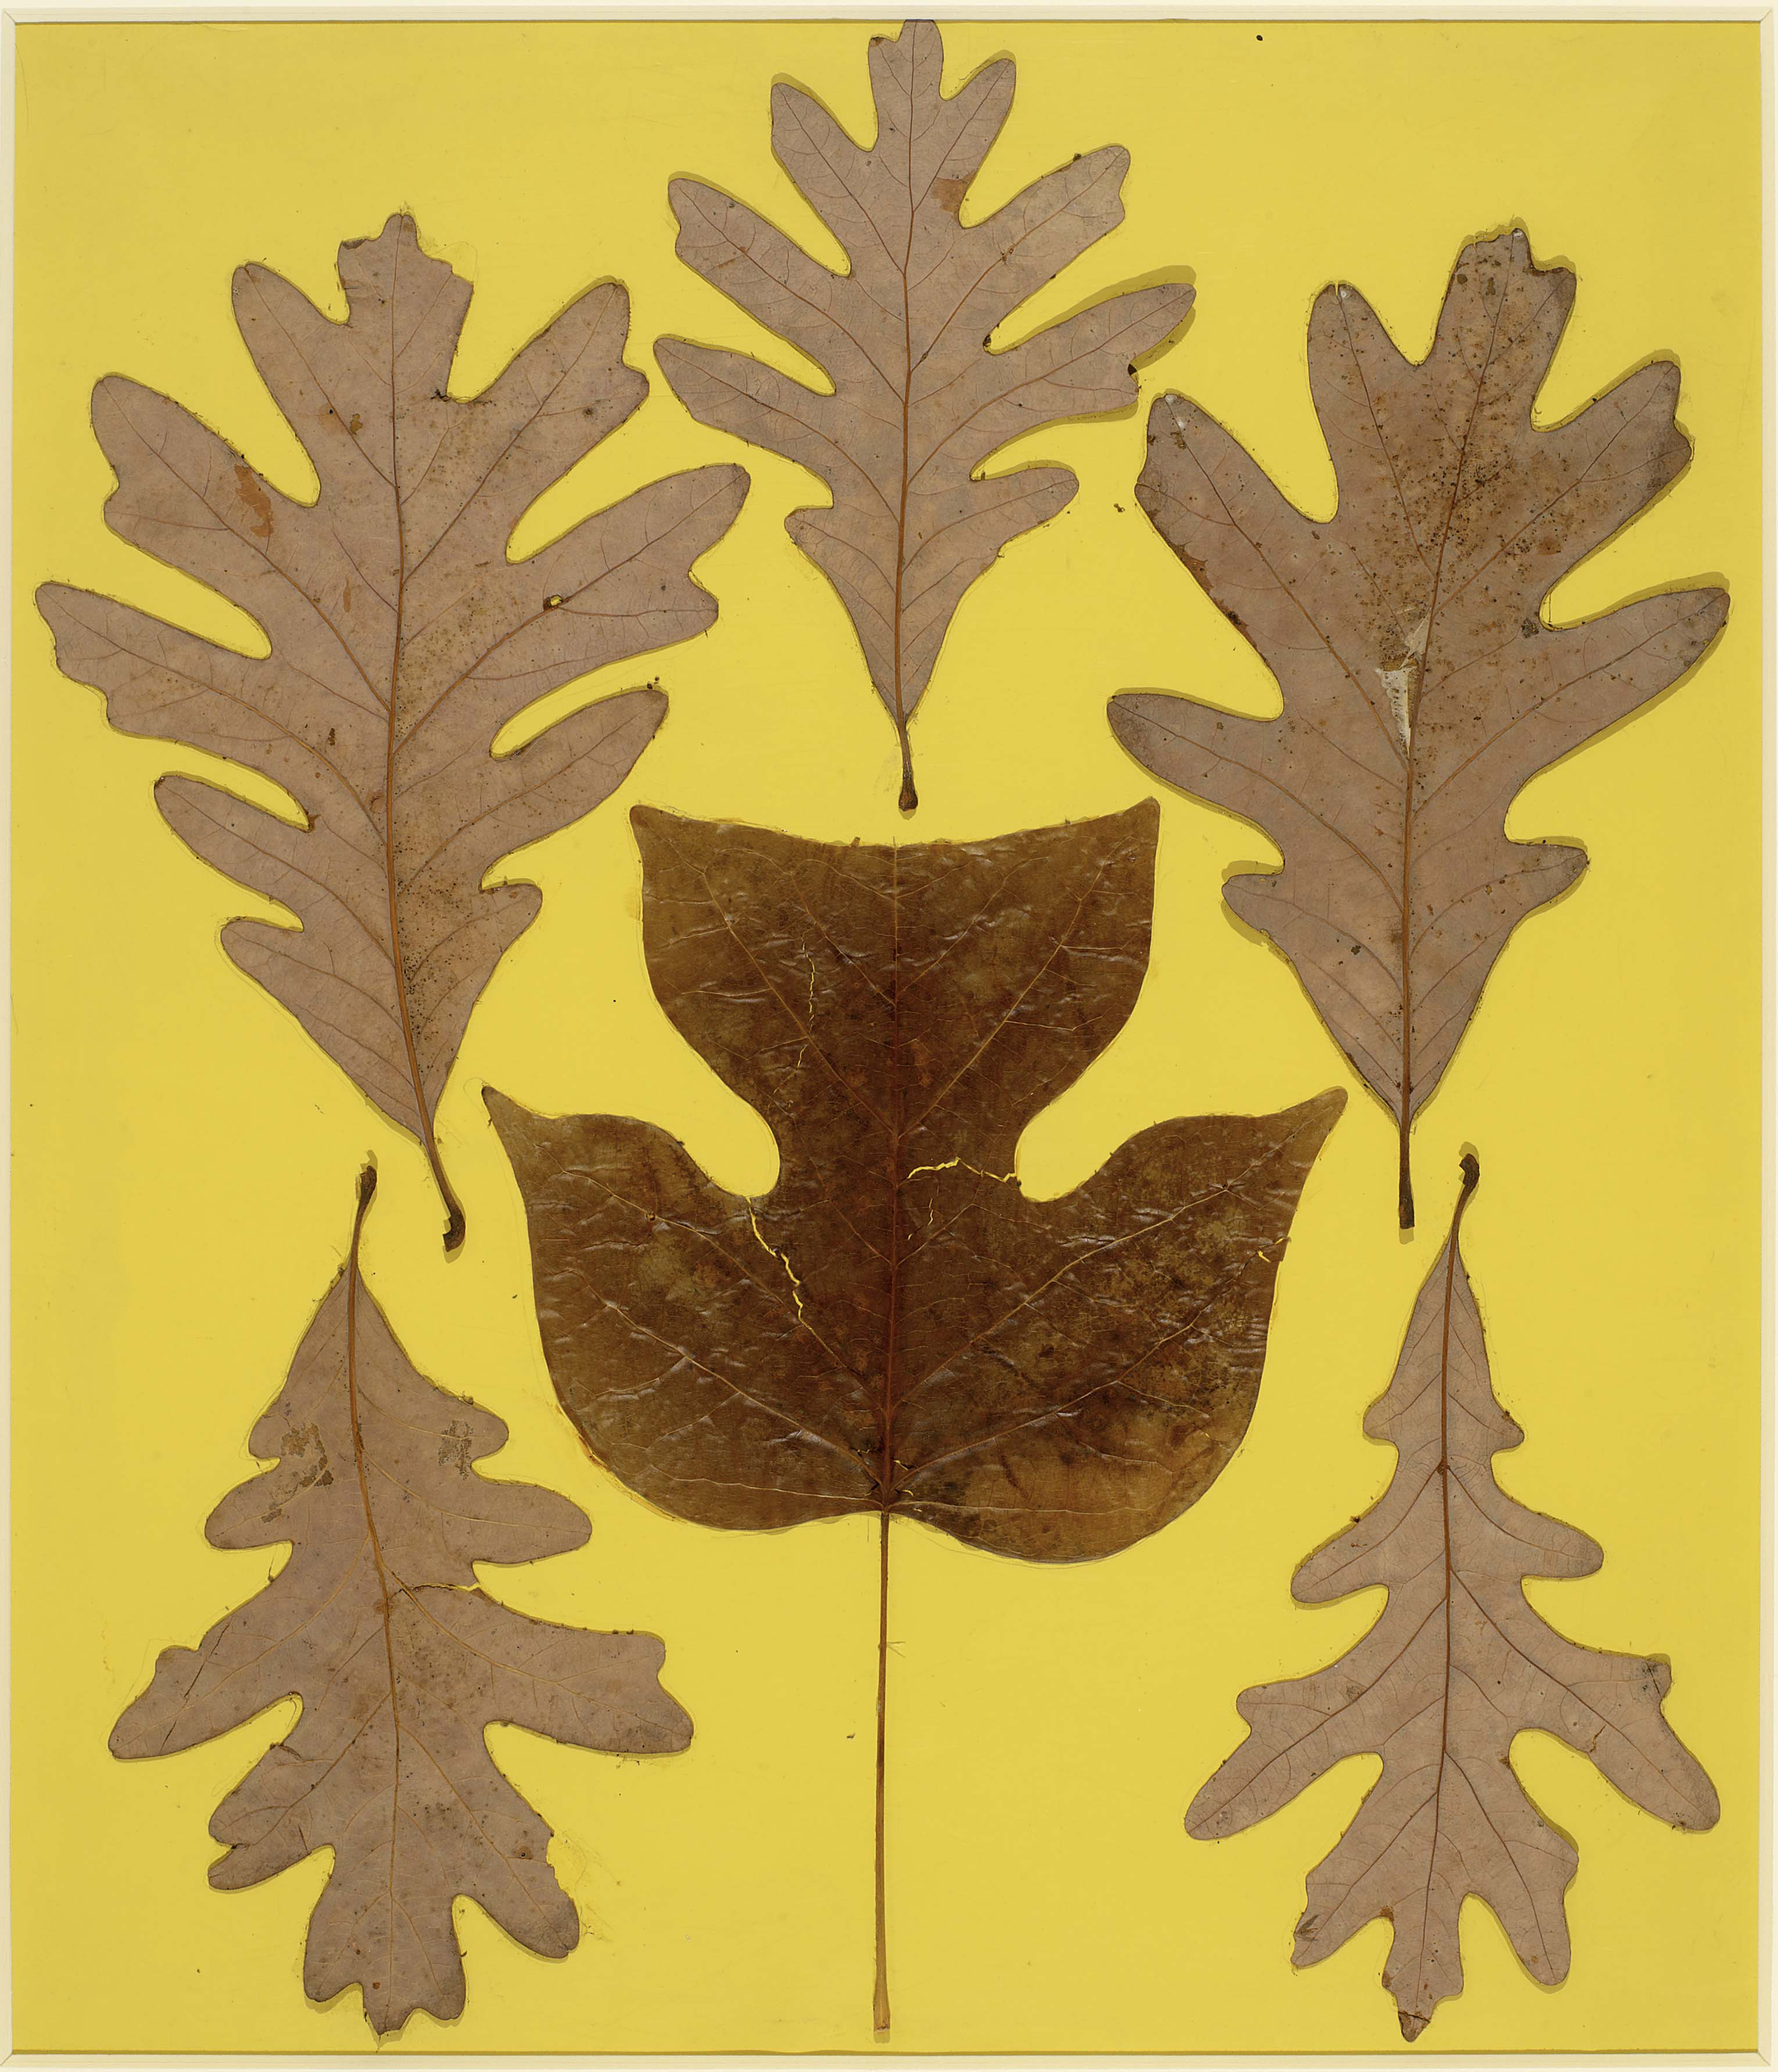 sneak peek leap before you look black mountain college  josef albers leaf study ix c 1940 leaves on paper 28 x 24 frac34 inches c the josef and anni albers foundation artists rights society new york